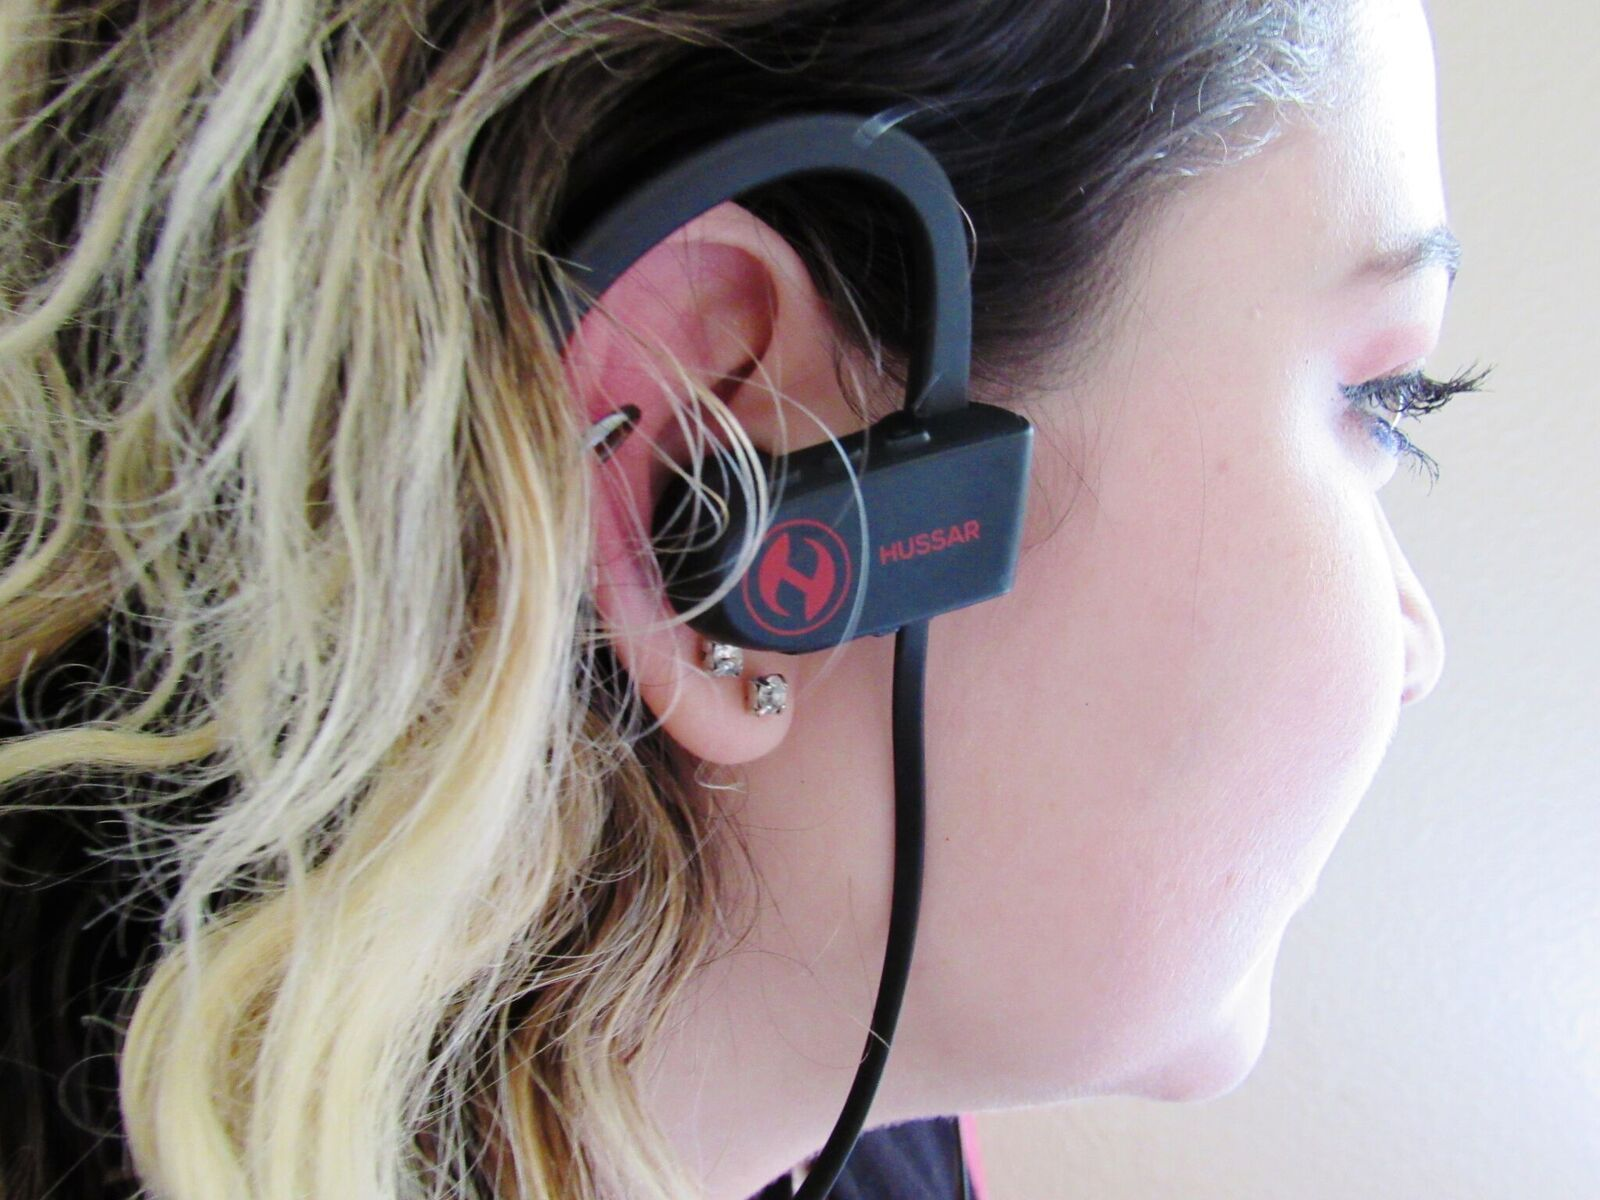 Our earbuds are stylish and comfortable to wear. Earbuds